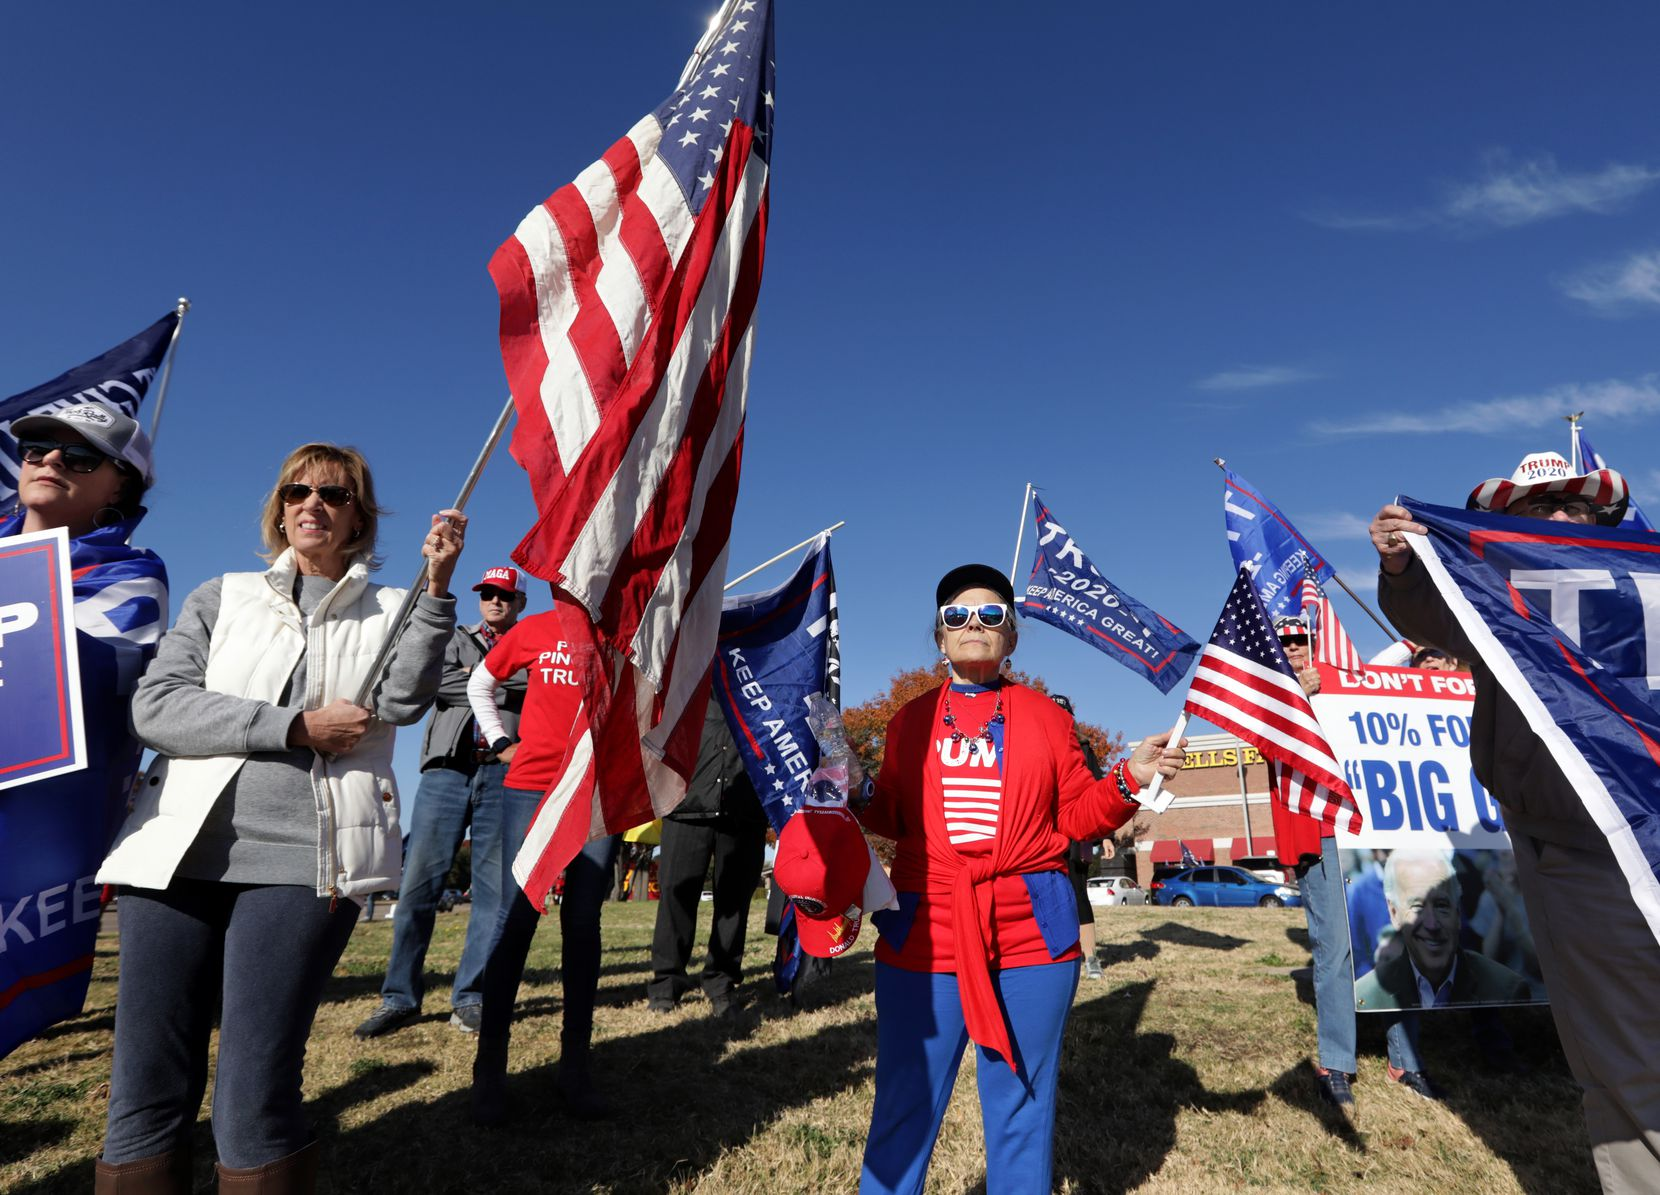 Trump supporters demonstrated in Plano on Dec. 12.